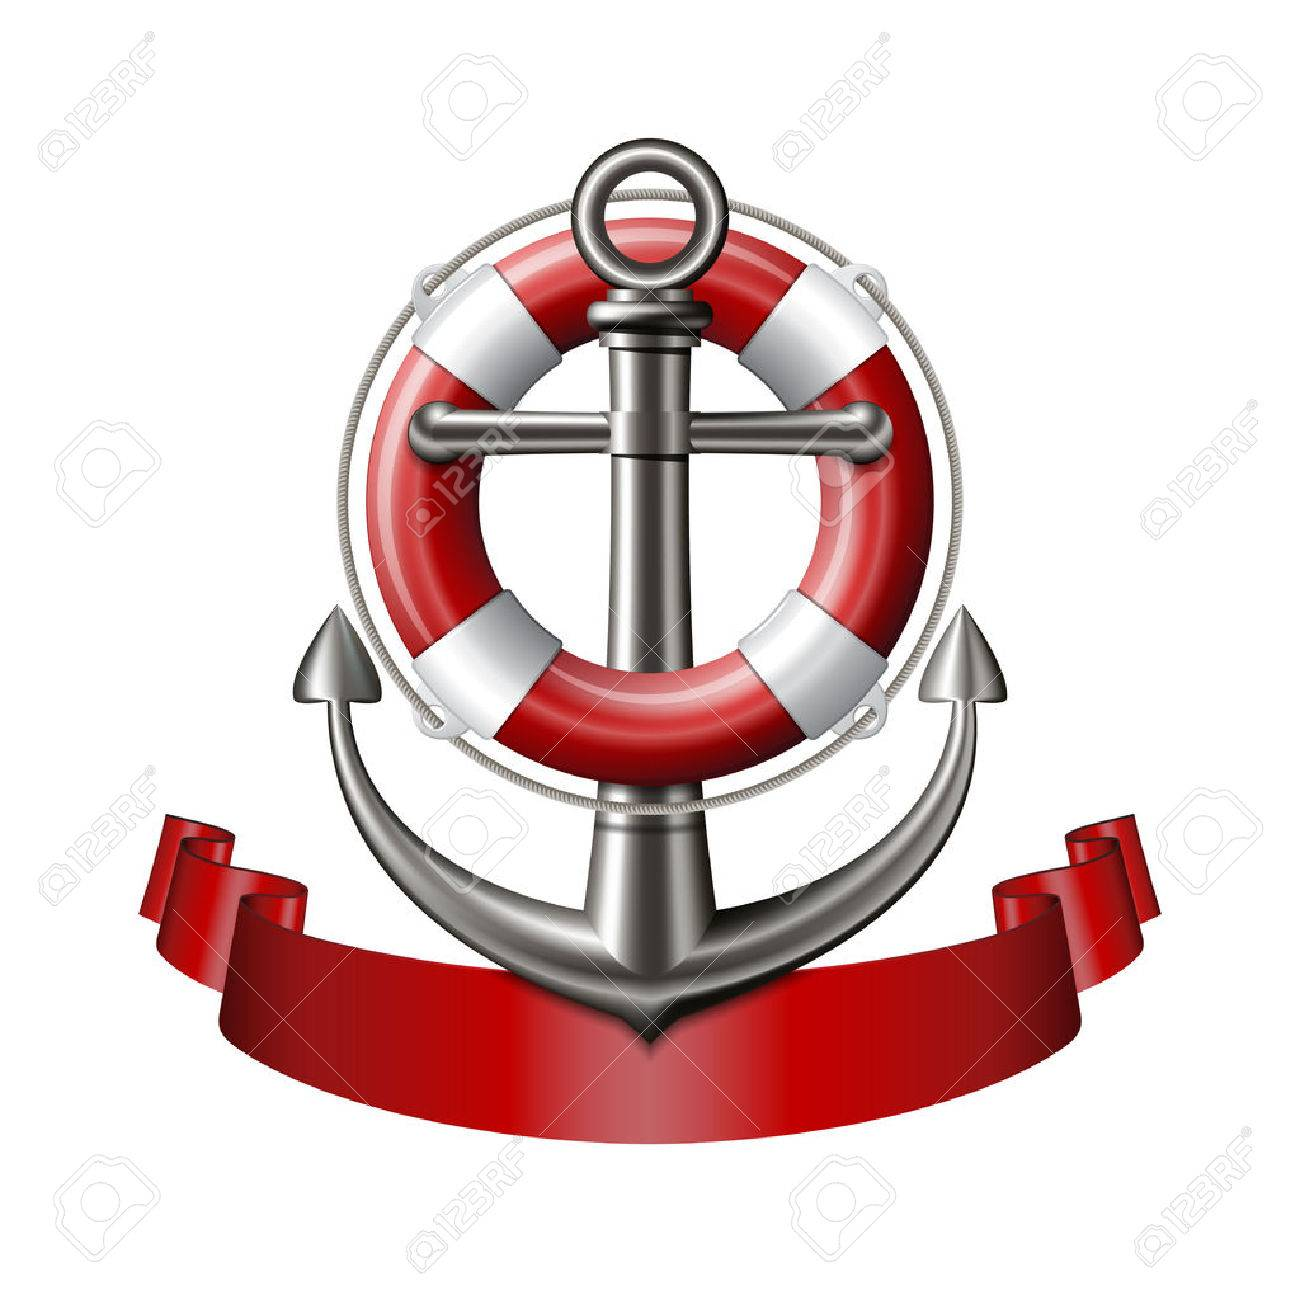 Nautical emblem with an anchor, lifebuoy and red ribbon isolated on white background. Marine summer travel banner. Vector illustration - 59786661